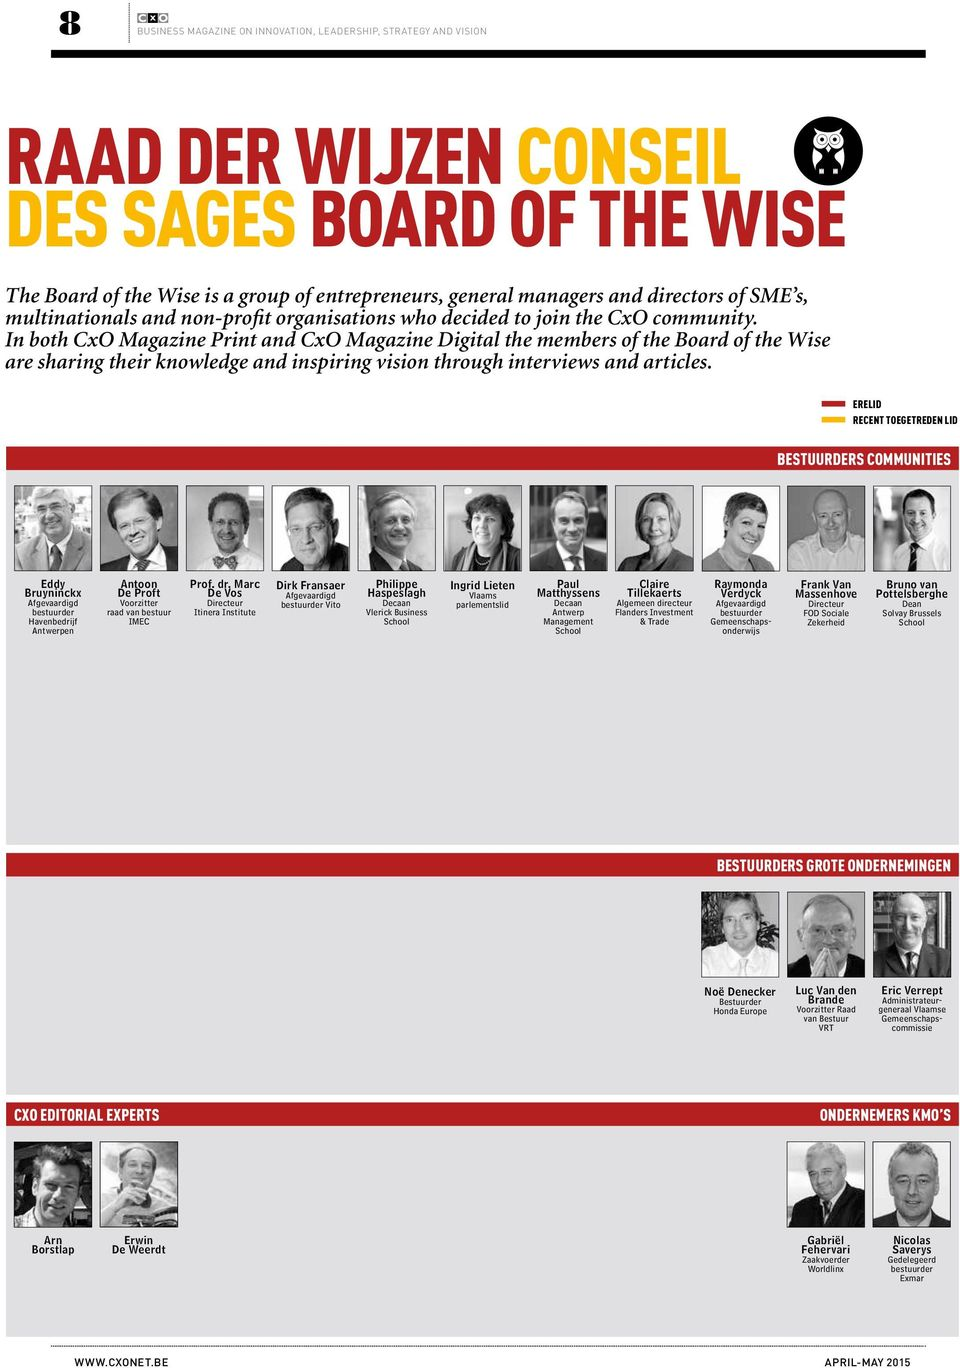 In both CxO Magazine Print and CxO Magazine Digital the members of the Board of the Wise are sharing their knowledge and inspiring vision through interviews and articles.